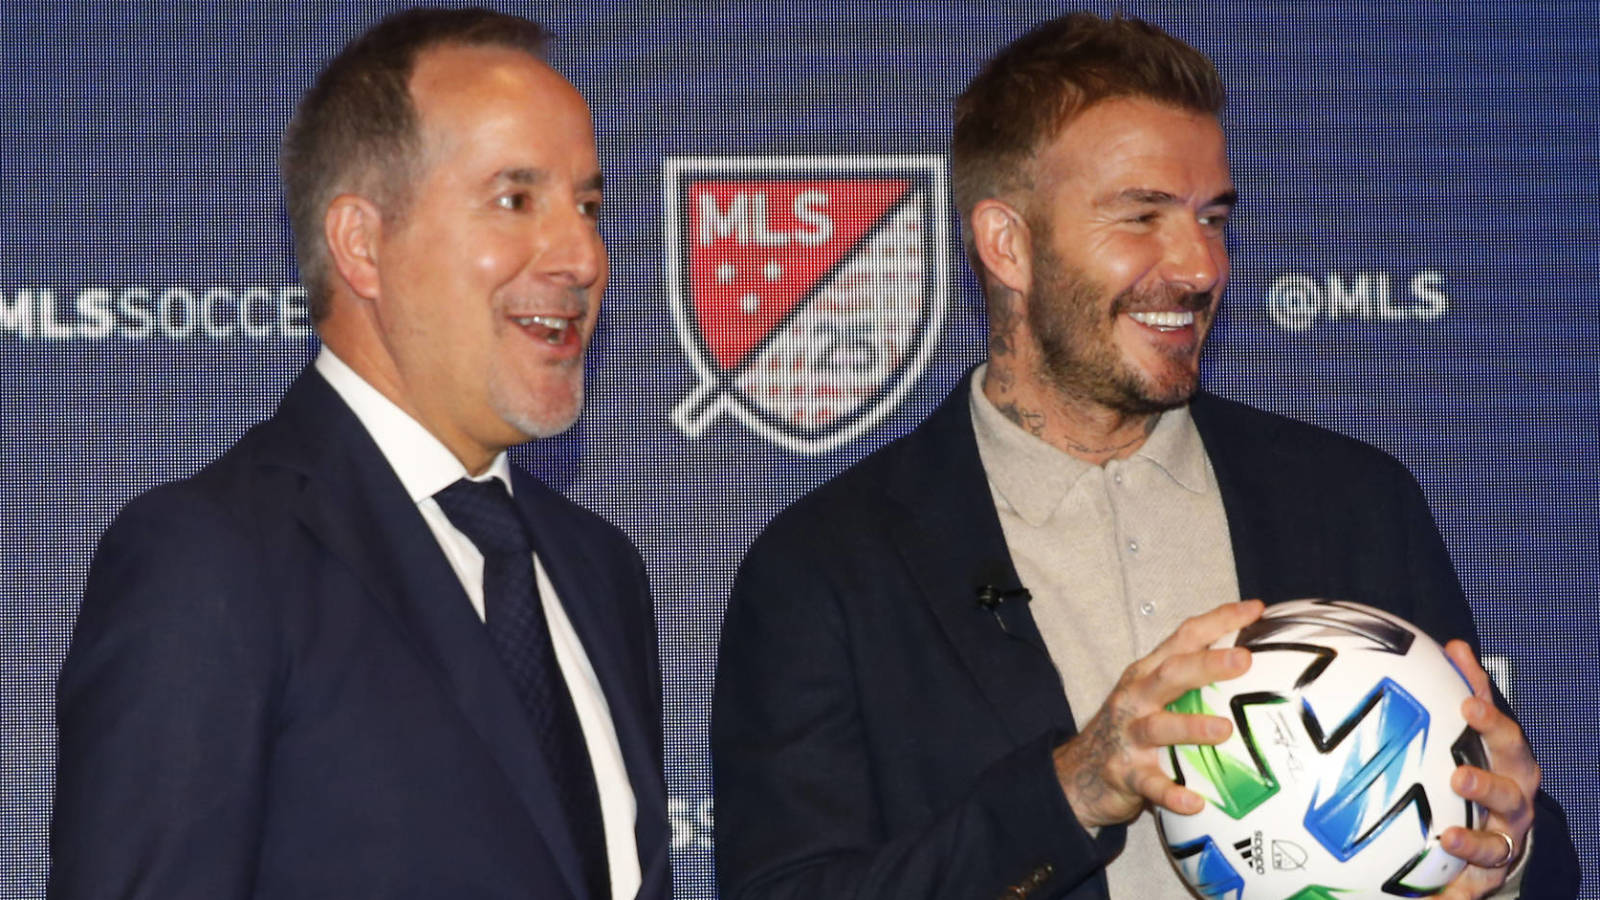 Through starts and stops, Inter Miami is ready to launch its inaugural campaign